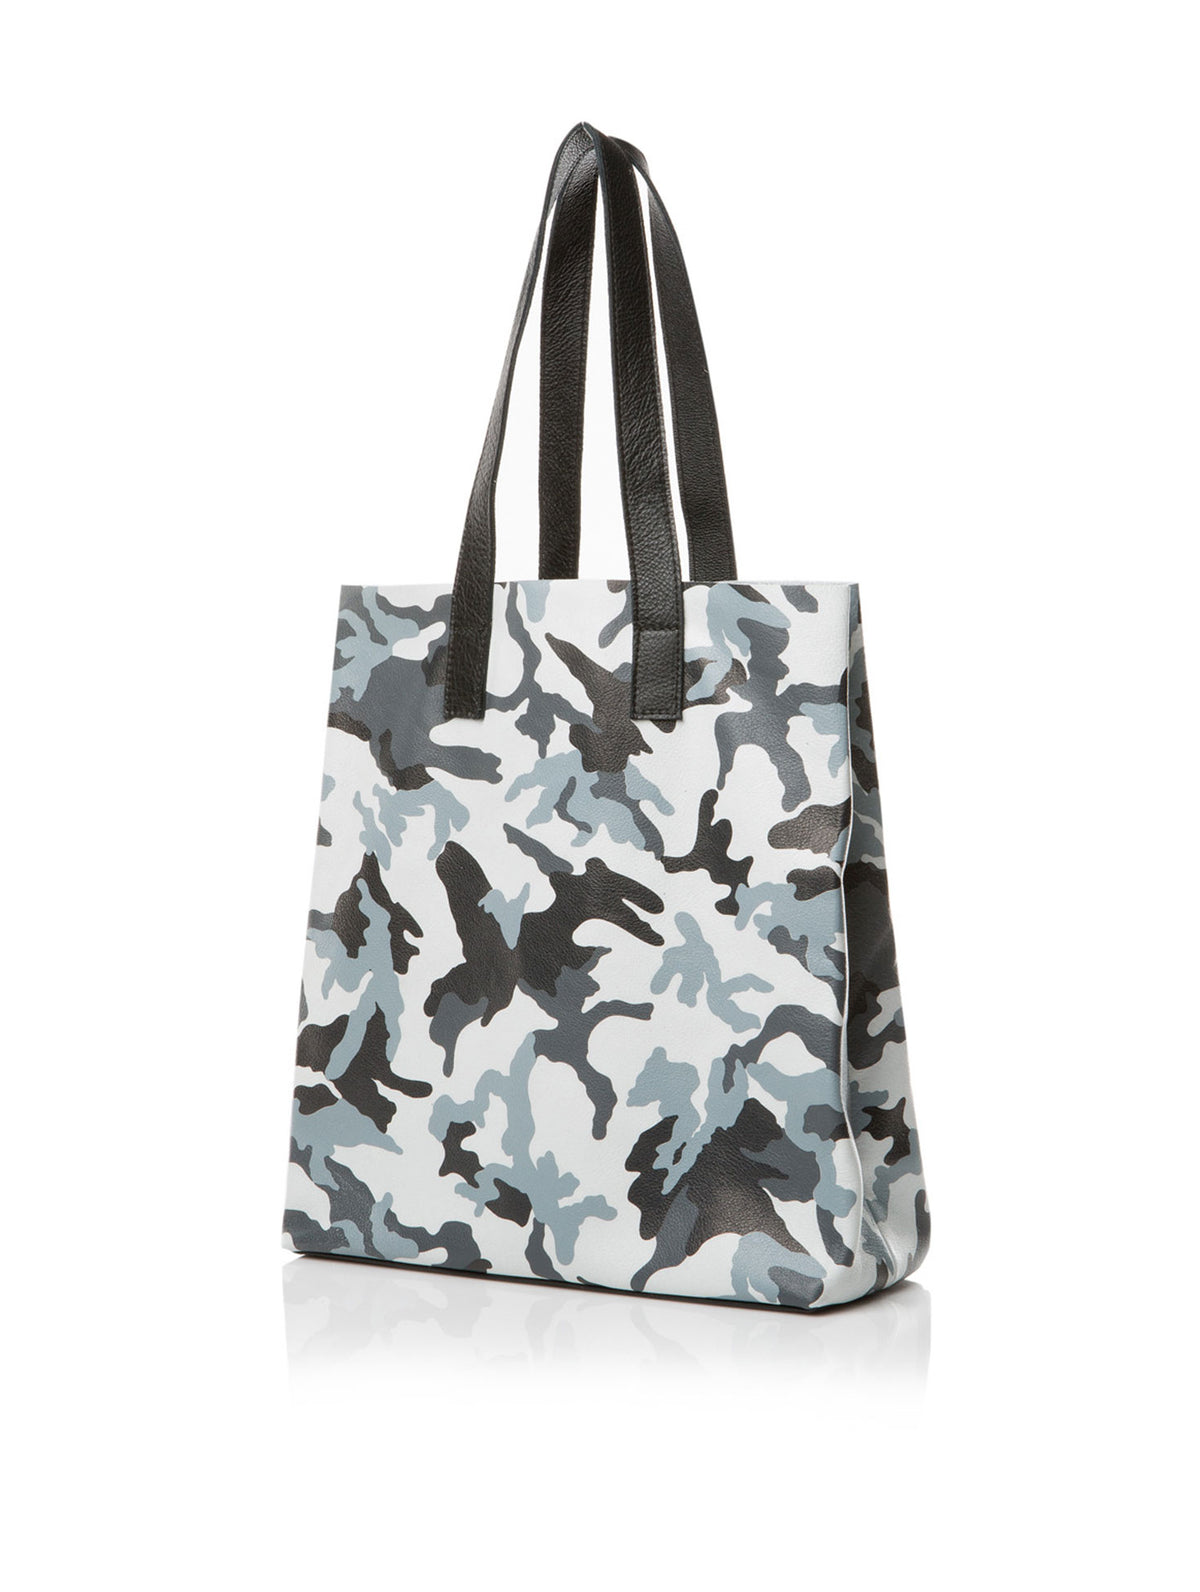 Marie Turnor - Trader New Camouflage Tote Bag - Amanda Mills Los Angeles